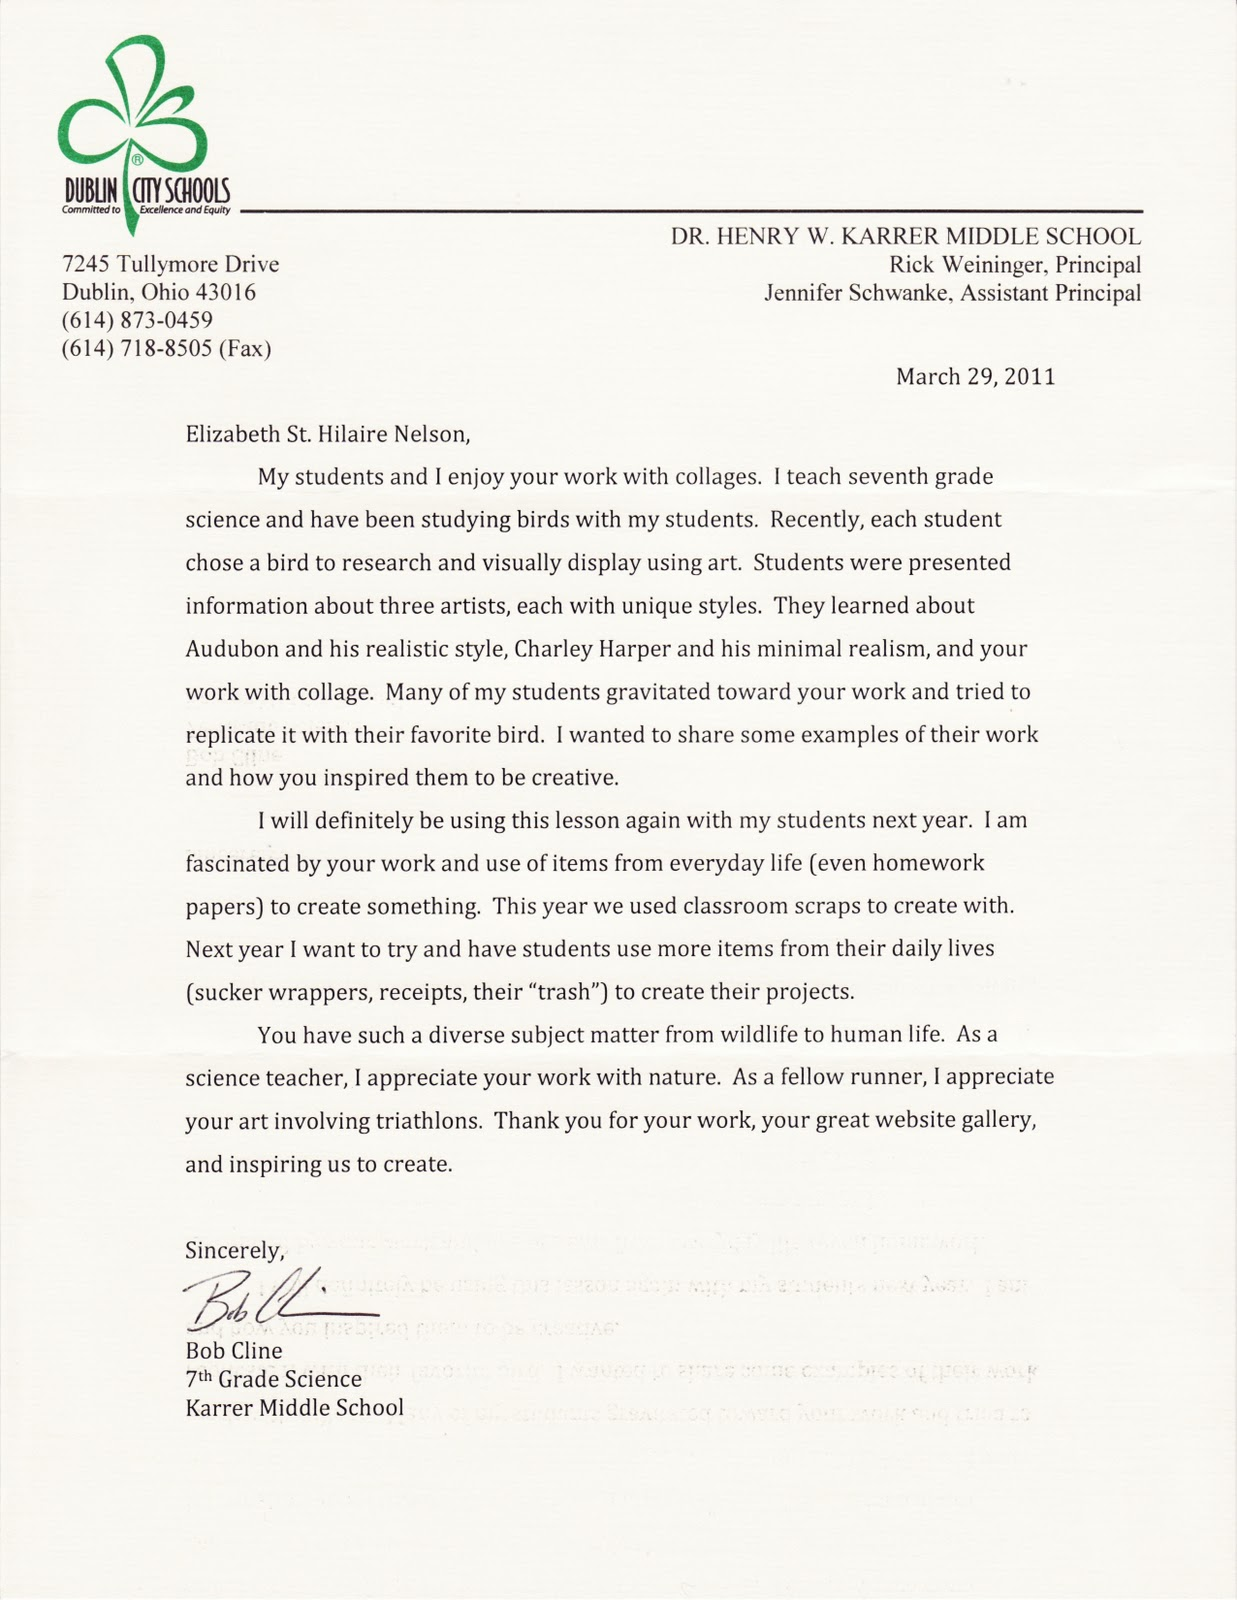 Clinical Psychology Letter Of Recommendation Sample